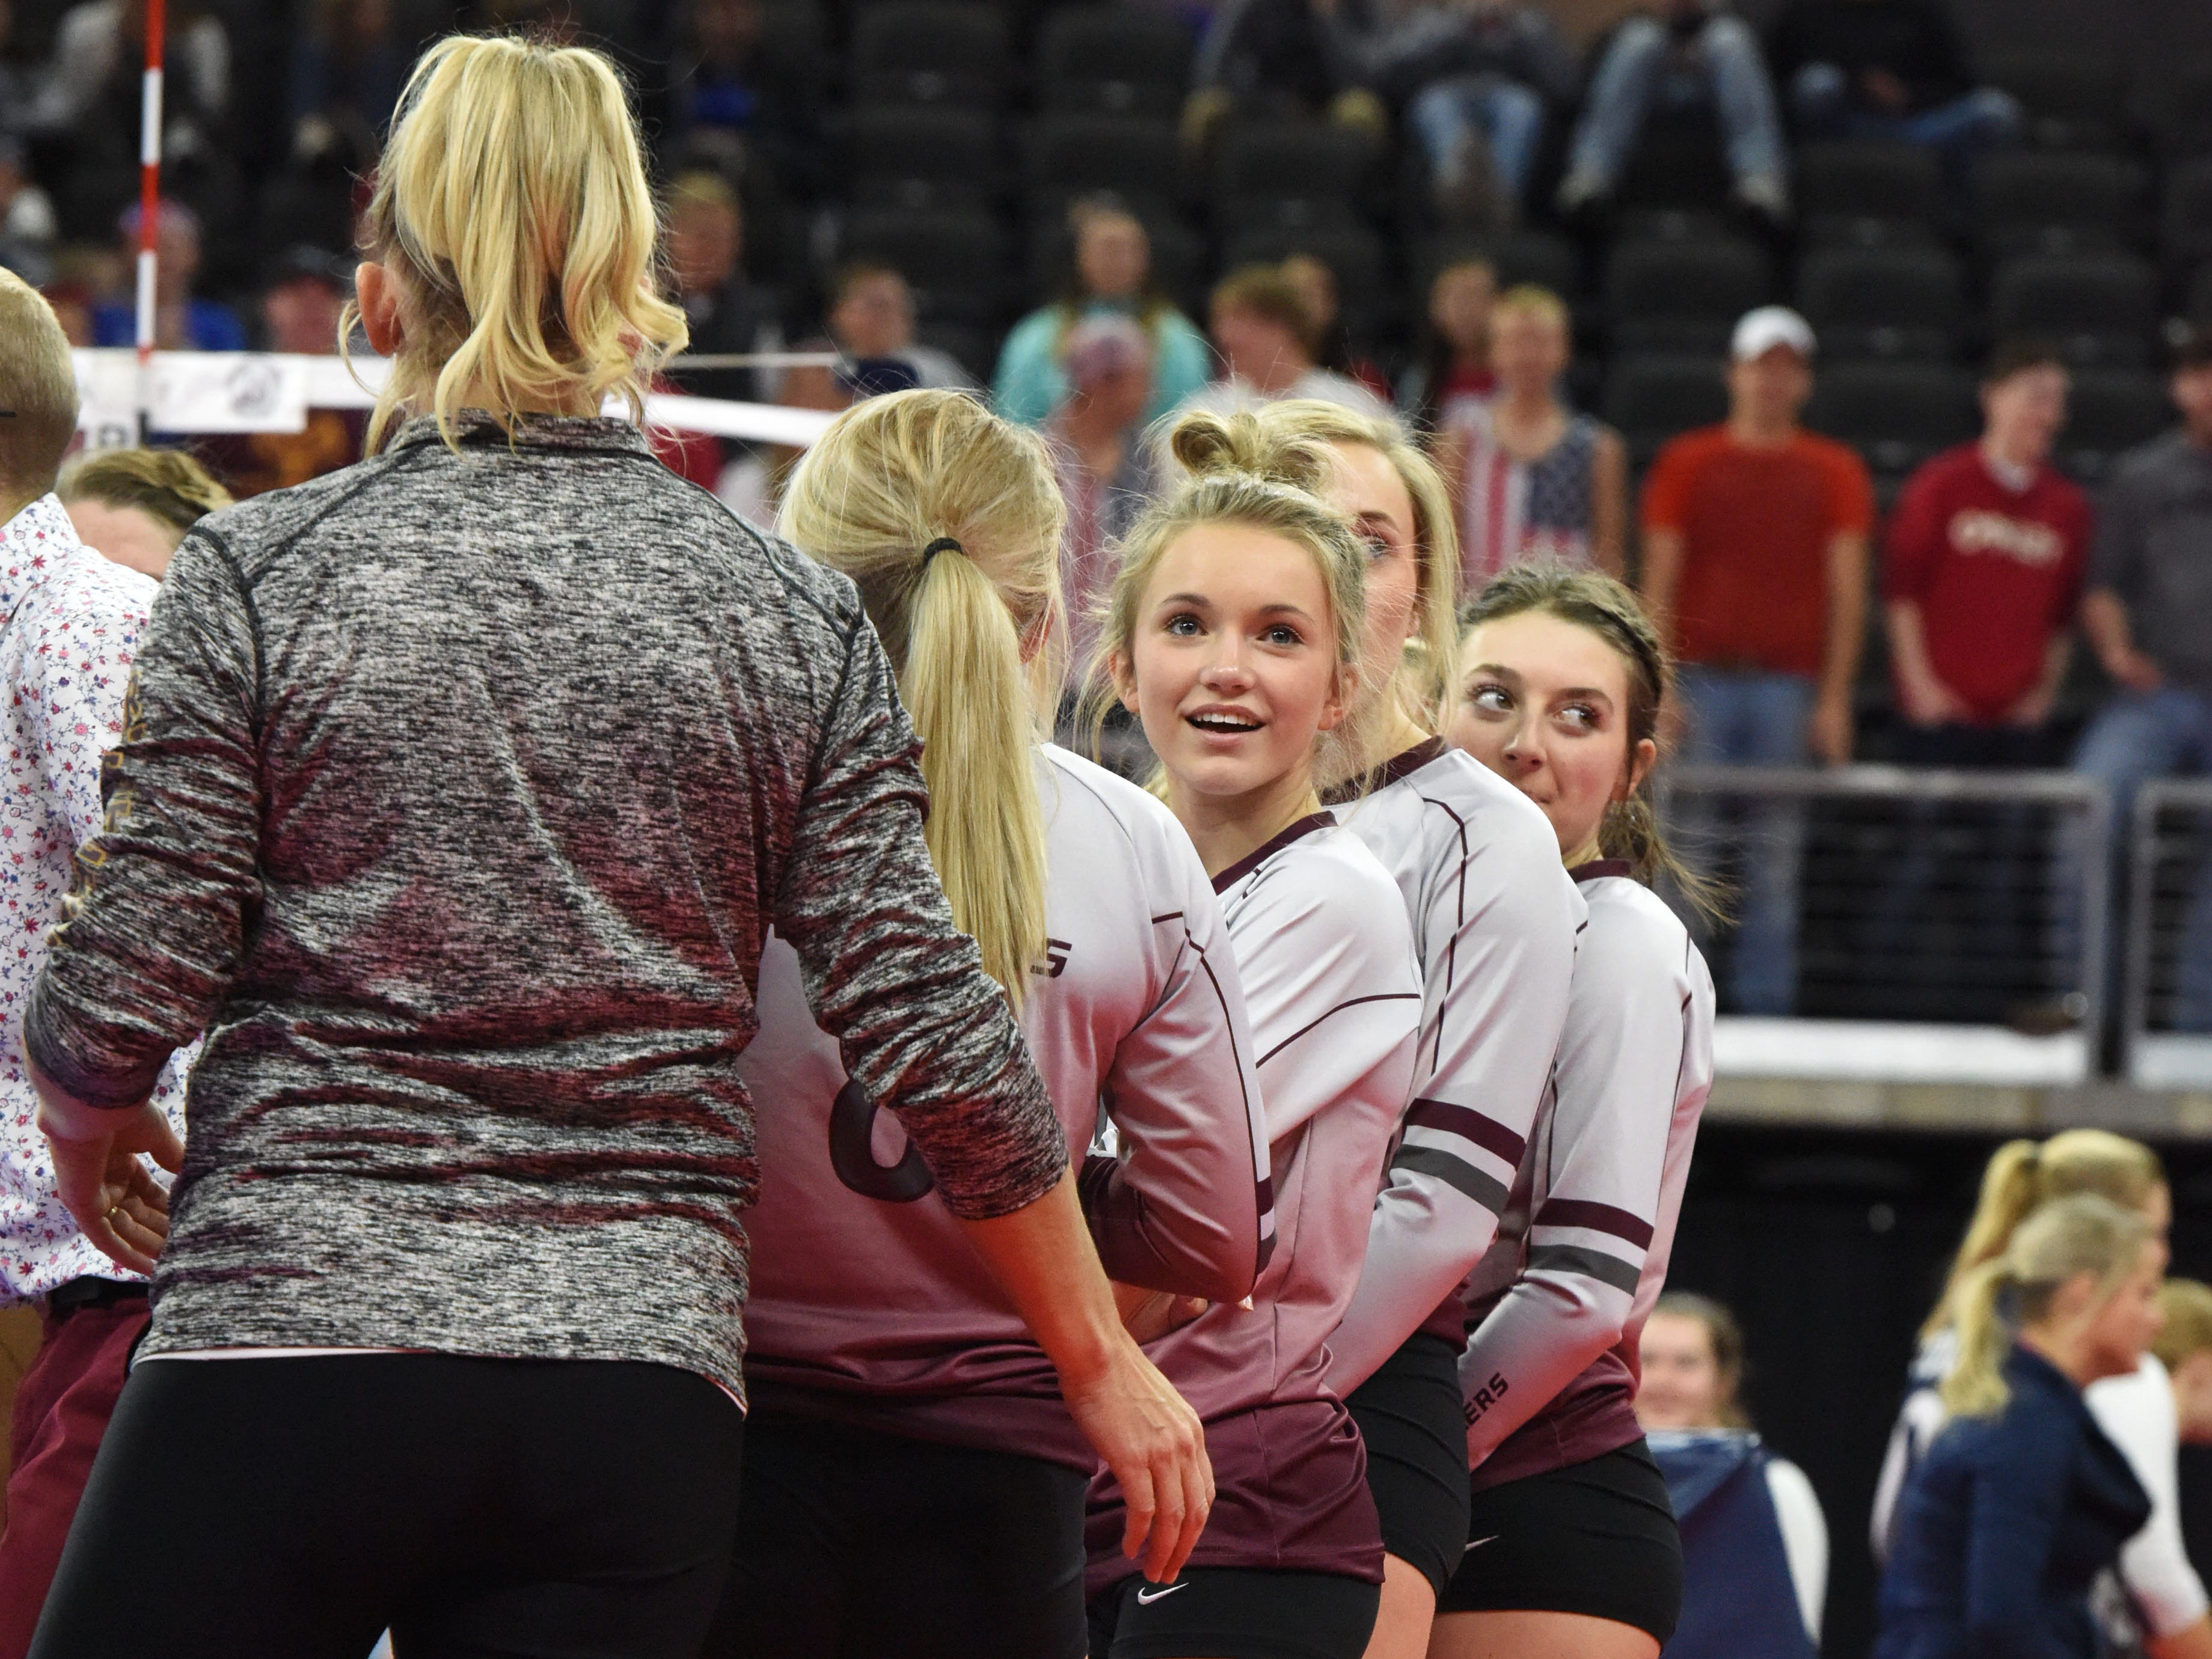 Ethan players look over at the crowd during a match against Burke, Friday, Nov. 16, 2018, at the Denny Sanford Premier Center in Sioux Falls, S.D.